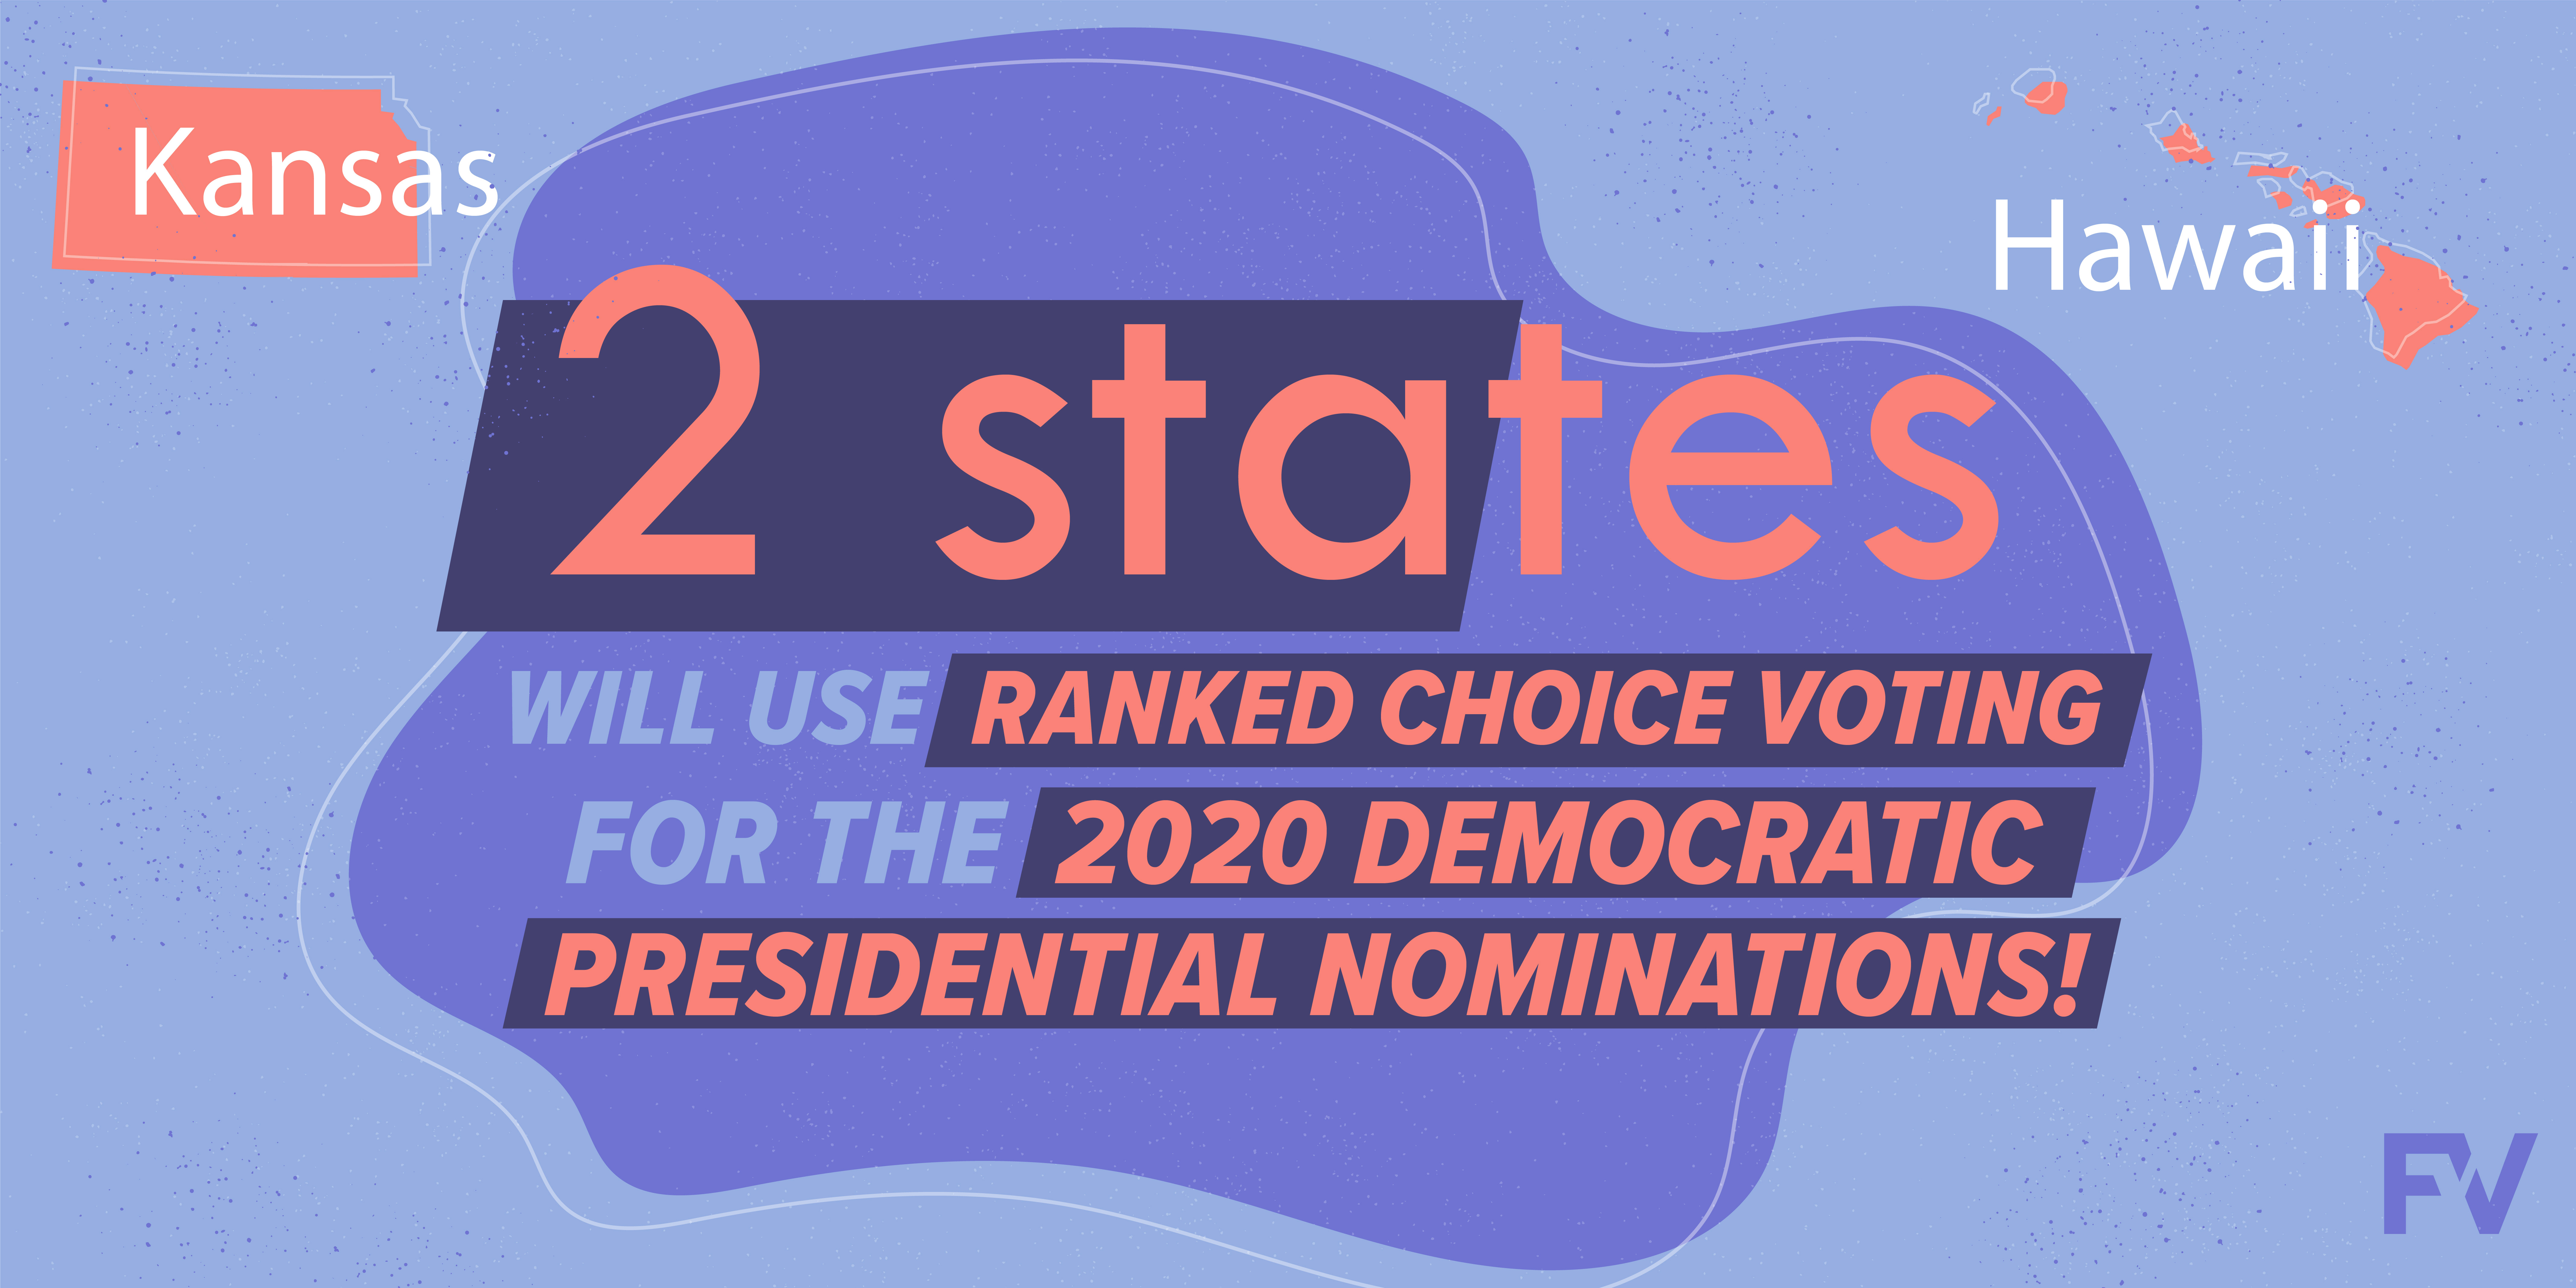 It's official. DNC approves plans of two states to use ranked choice voting in candidate selection process